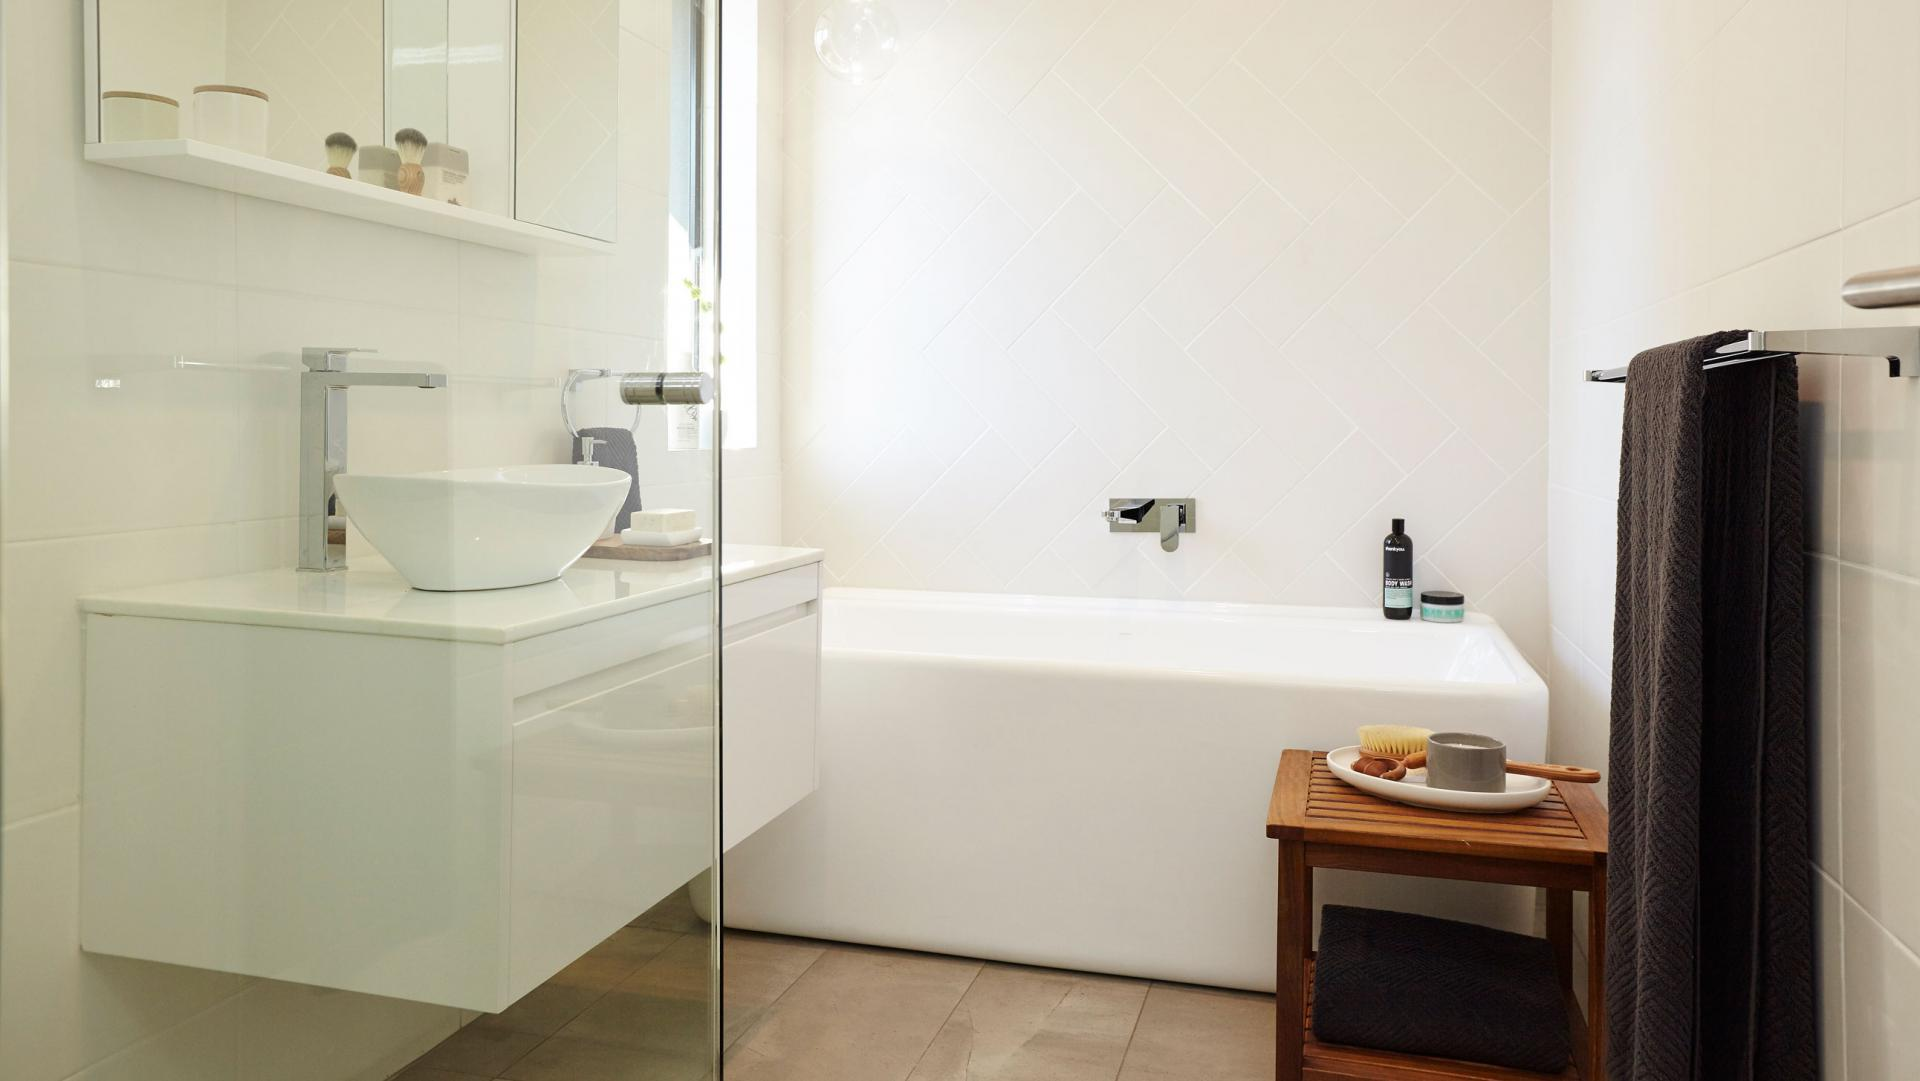 Bathroom renovations melbourne eastern suburbs facelifts renovations fixtures Small bathroom design melbourne